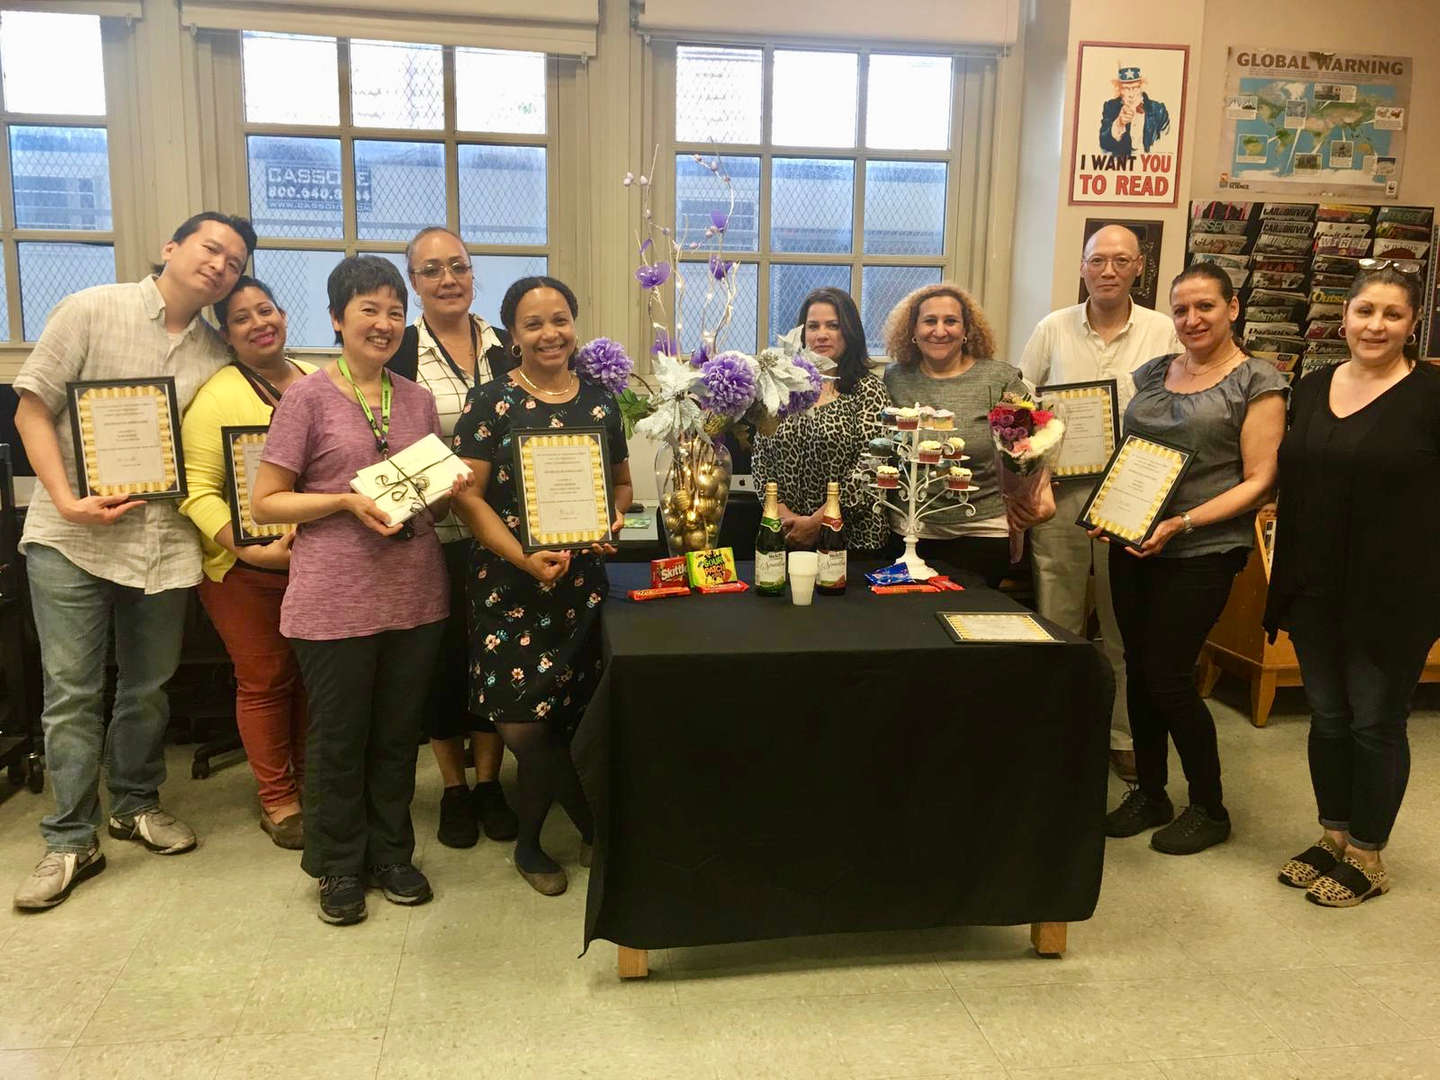 Ten members of the PTA holding award plaques